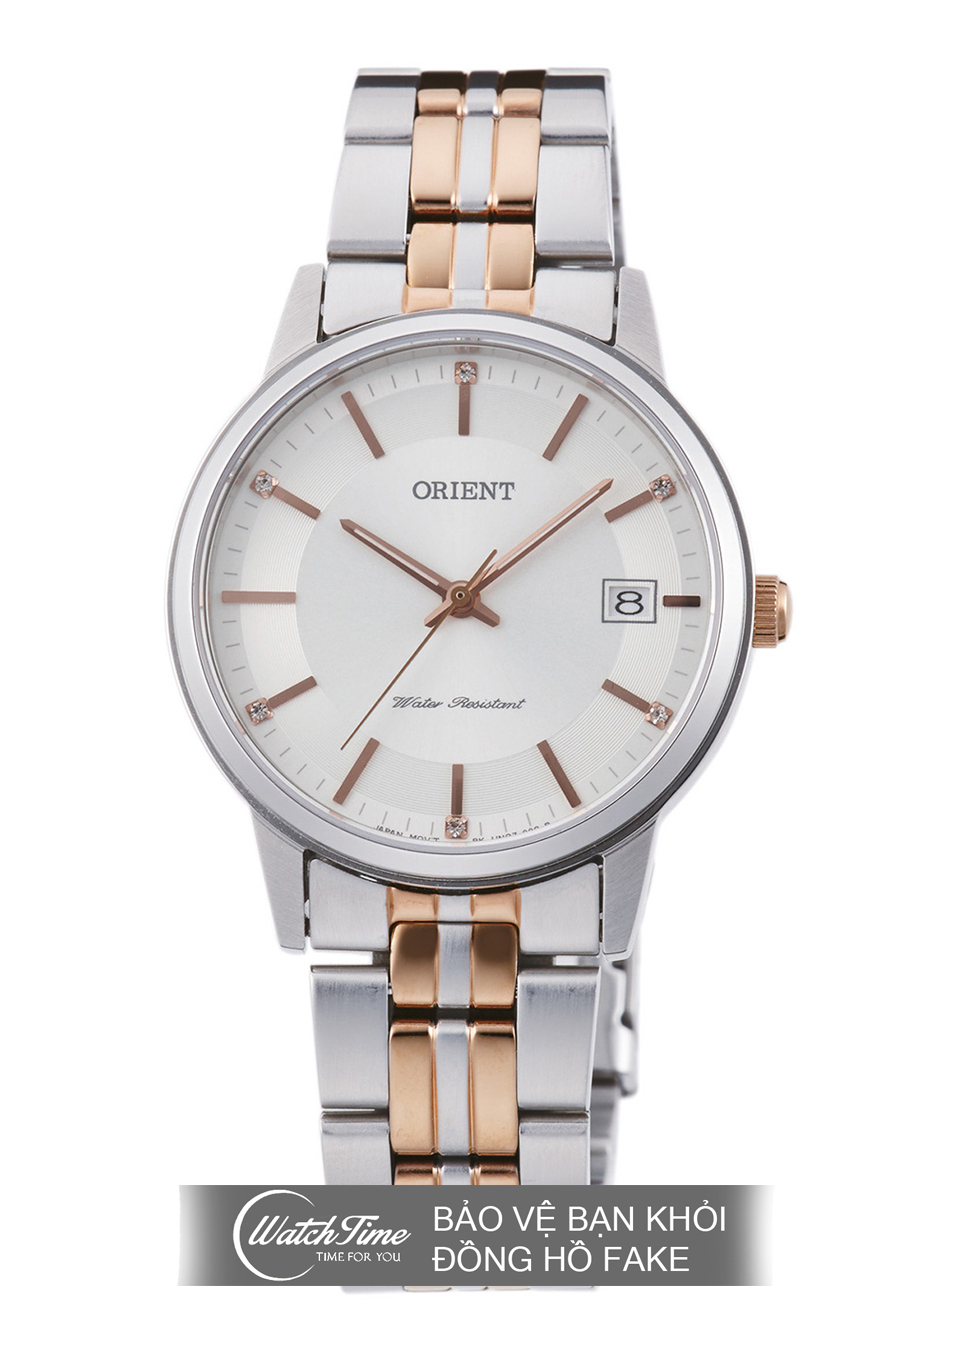 Đồng hồ Orient FUNG7001W0